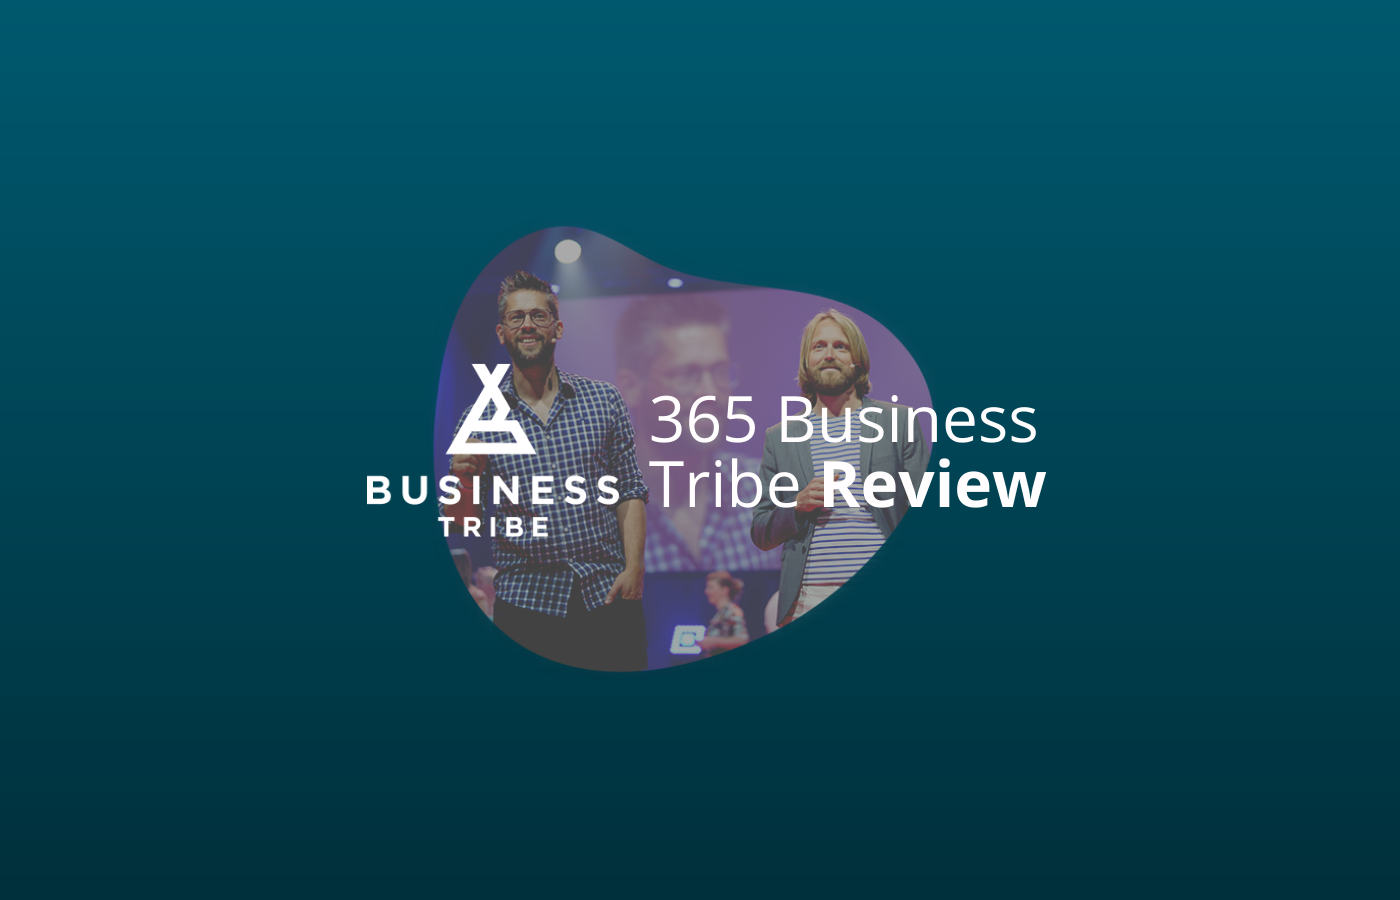 365 business tribe review ervaringen